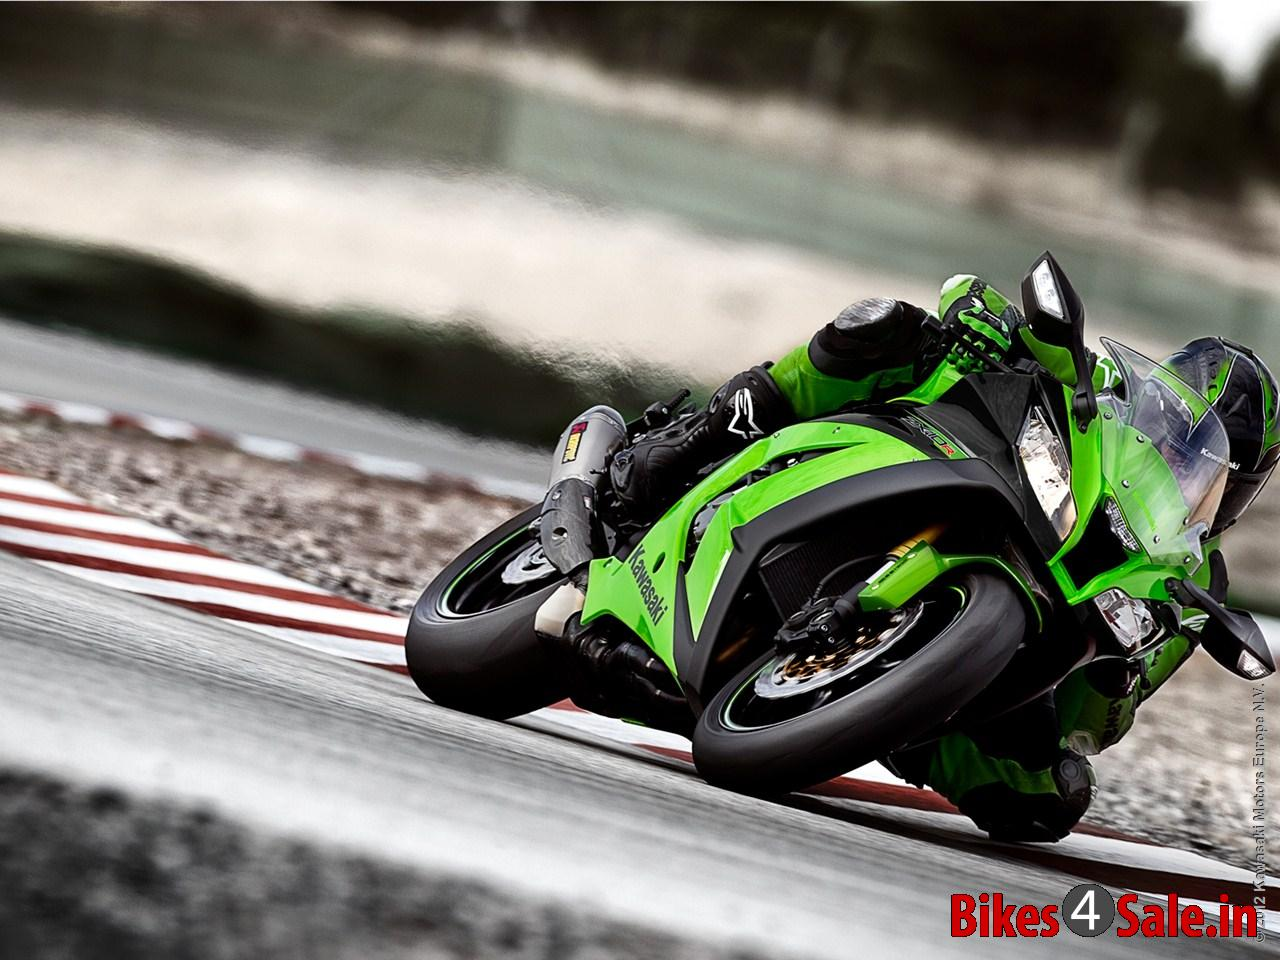 Kawasaki Ninja 650R - Motorcycle Specification